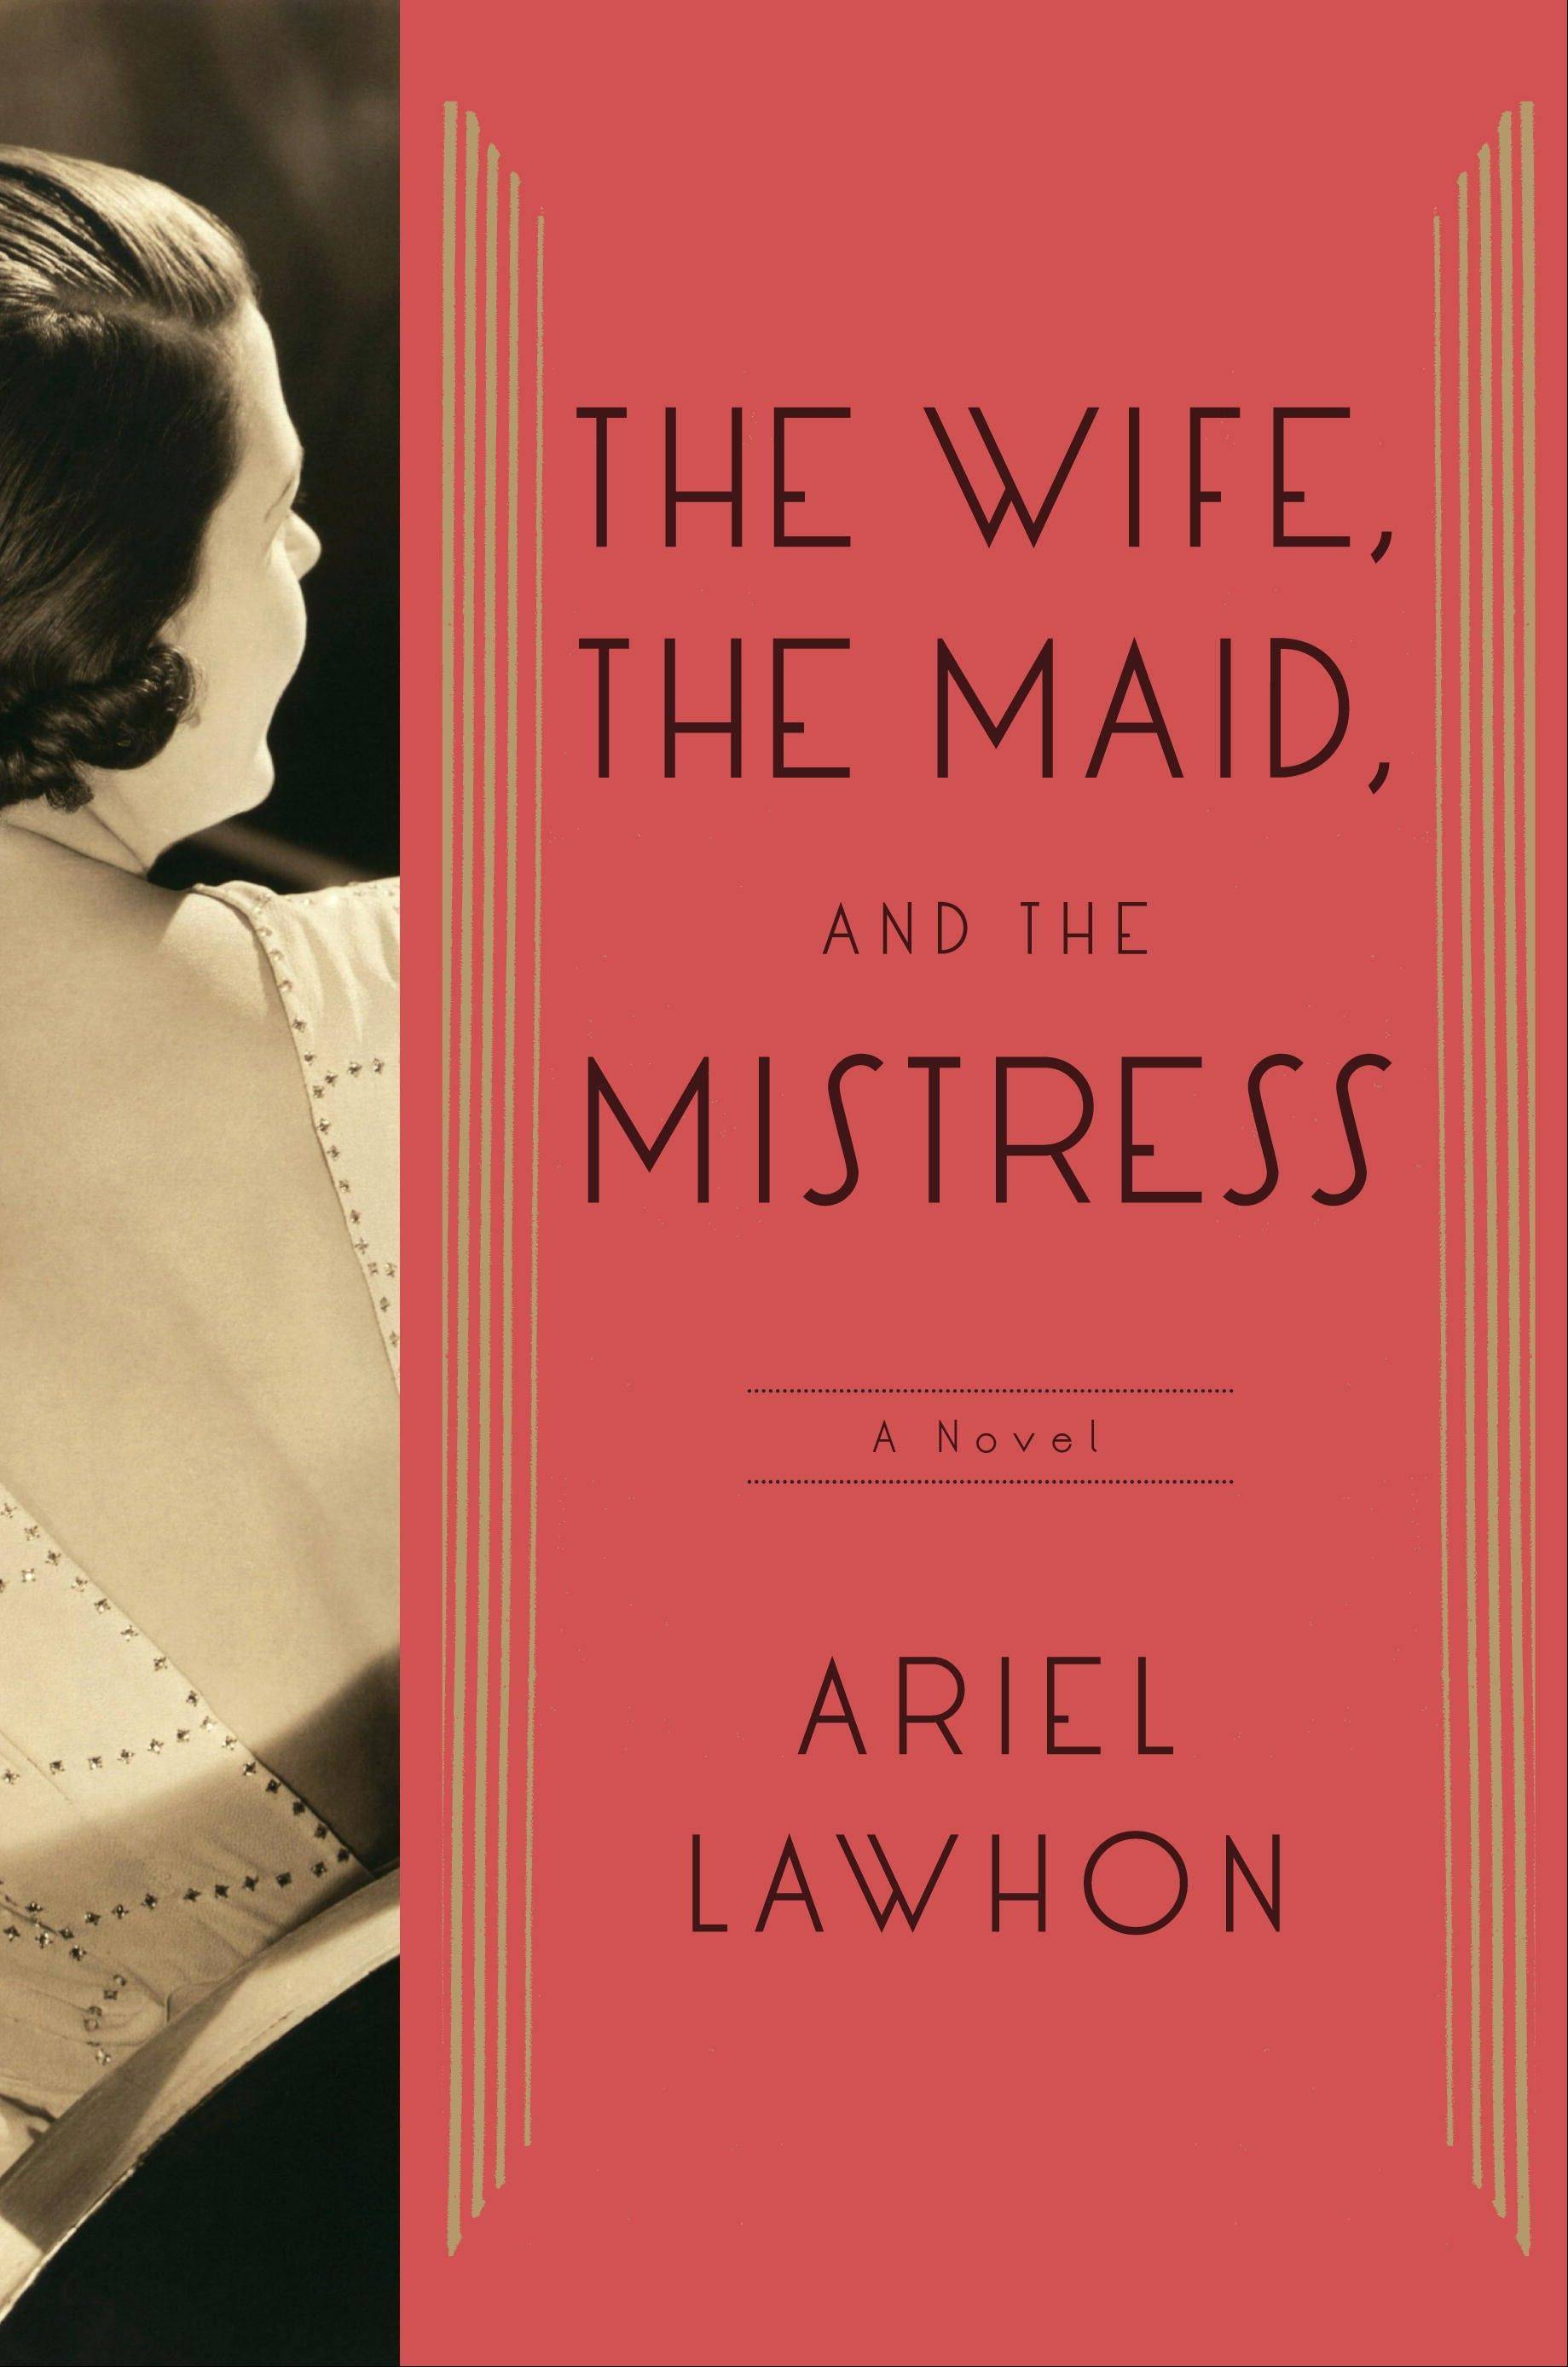 """The Wife, The Maid, and the Mistress"" by Ariel Lawhon revisits the disappearance of New York State Supreme Court Judge Joseph Crater in 1930, which led to tabloid headlines and much gossip."